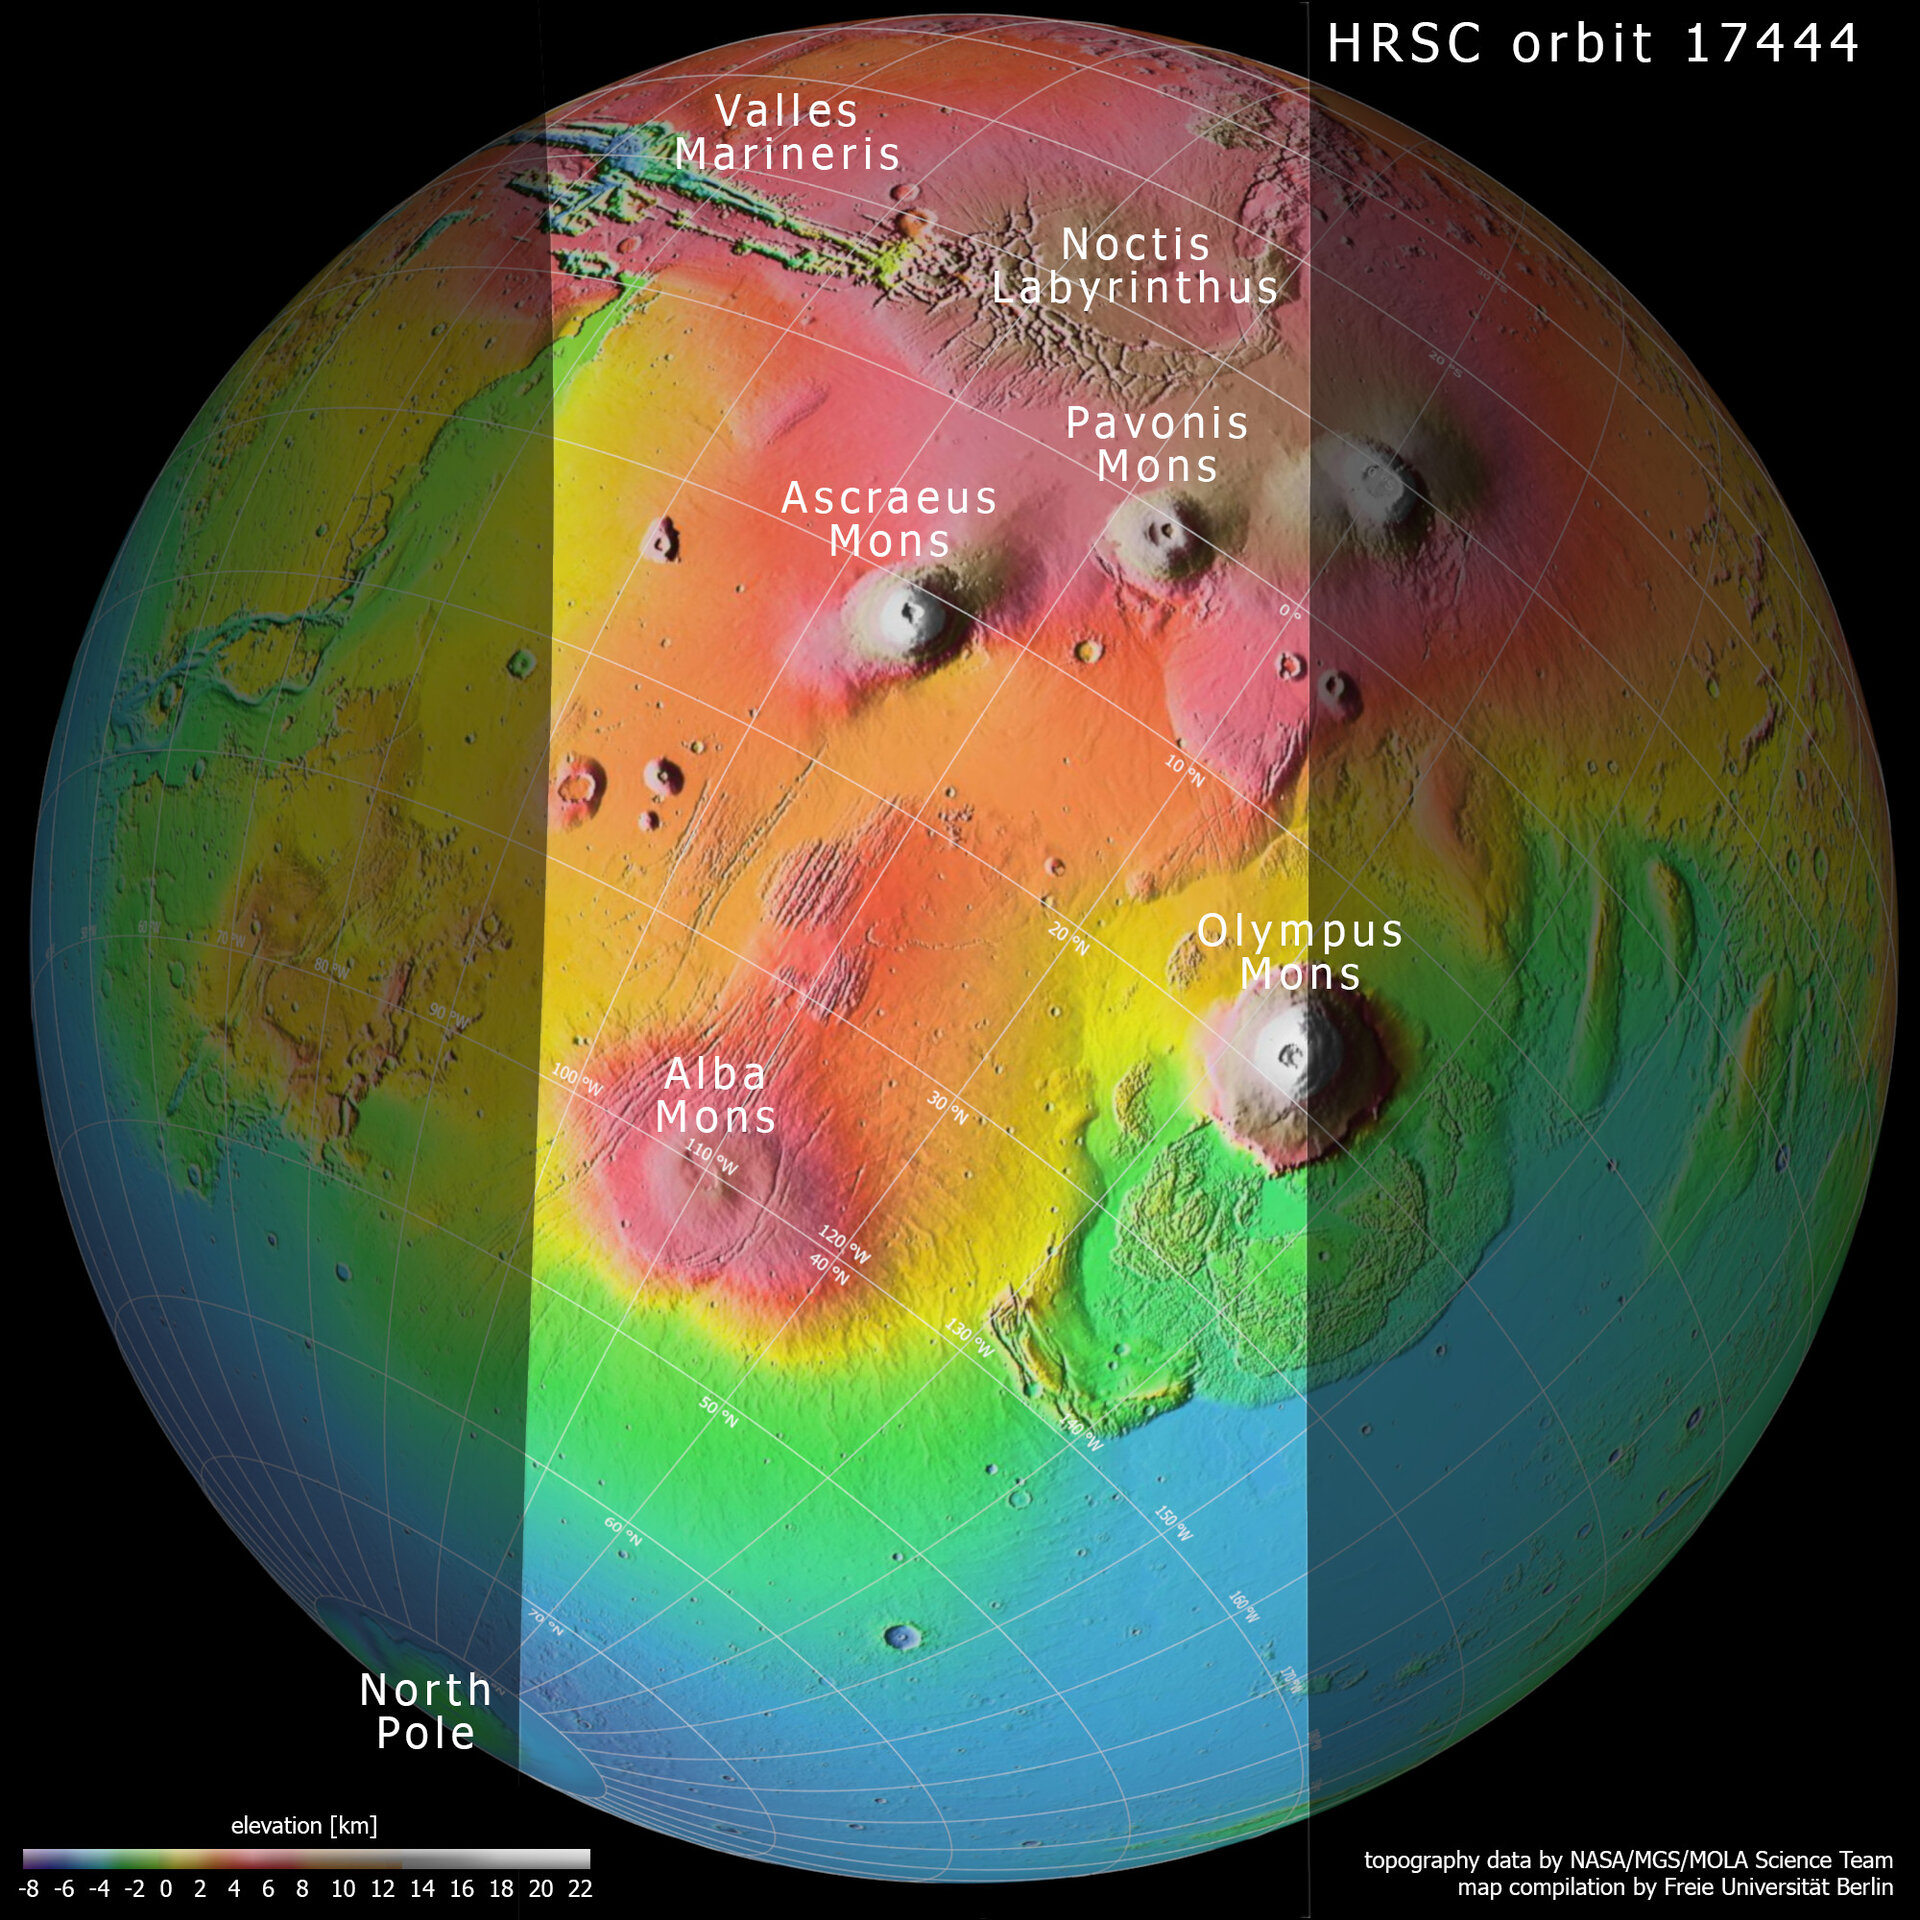 Topography of Tharsis region on Mars